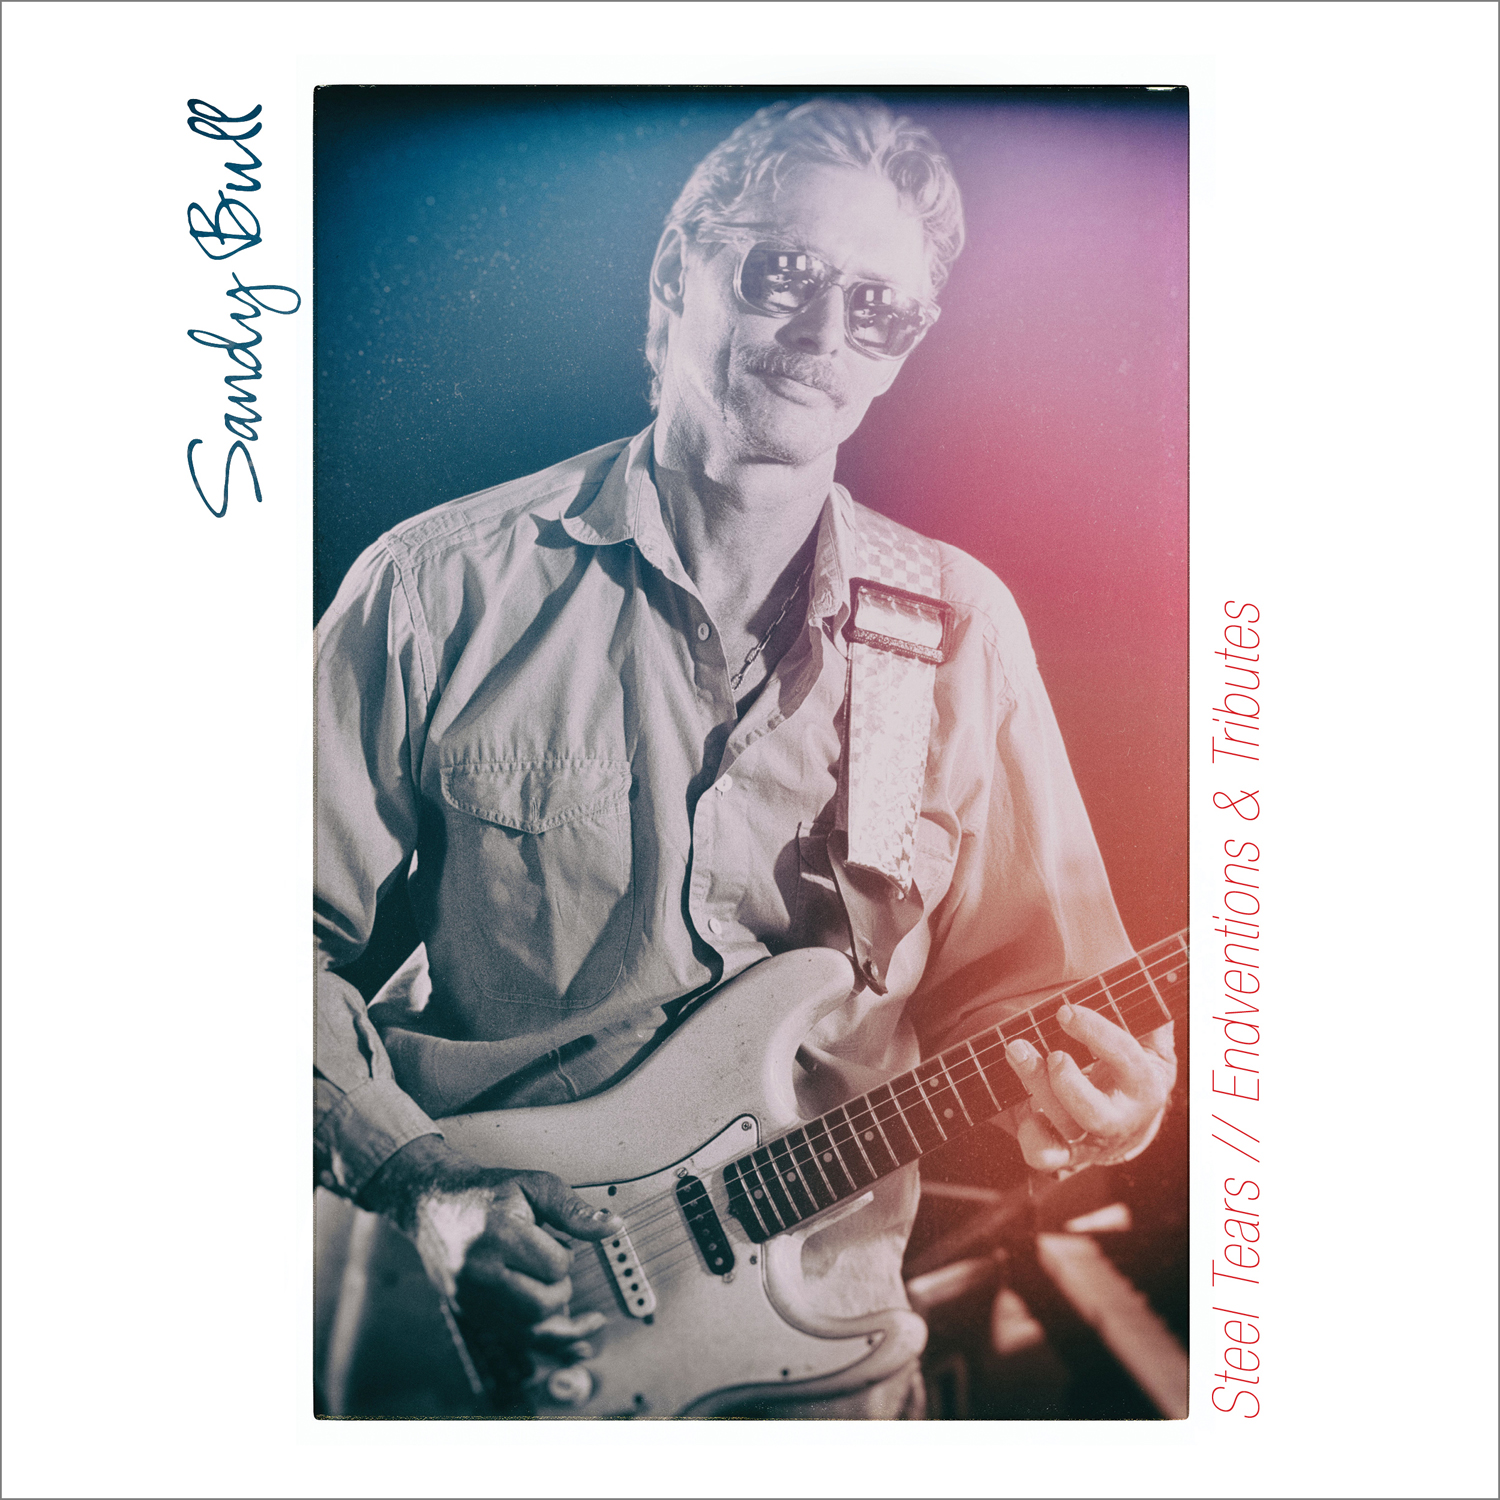 Sandy Bull - Steel Tears // Endventions & Tributes  Release Date: April 13, 2018 Label: Omnivore Recordings  SERVICE: Restoration, Mastering NUMBER OF DISCS: 1 GENRE: Country FORMAT: CD